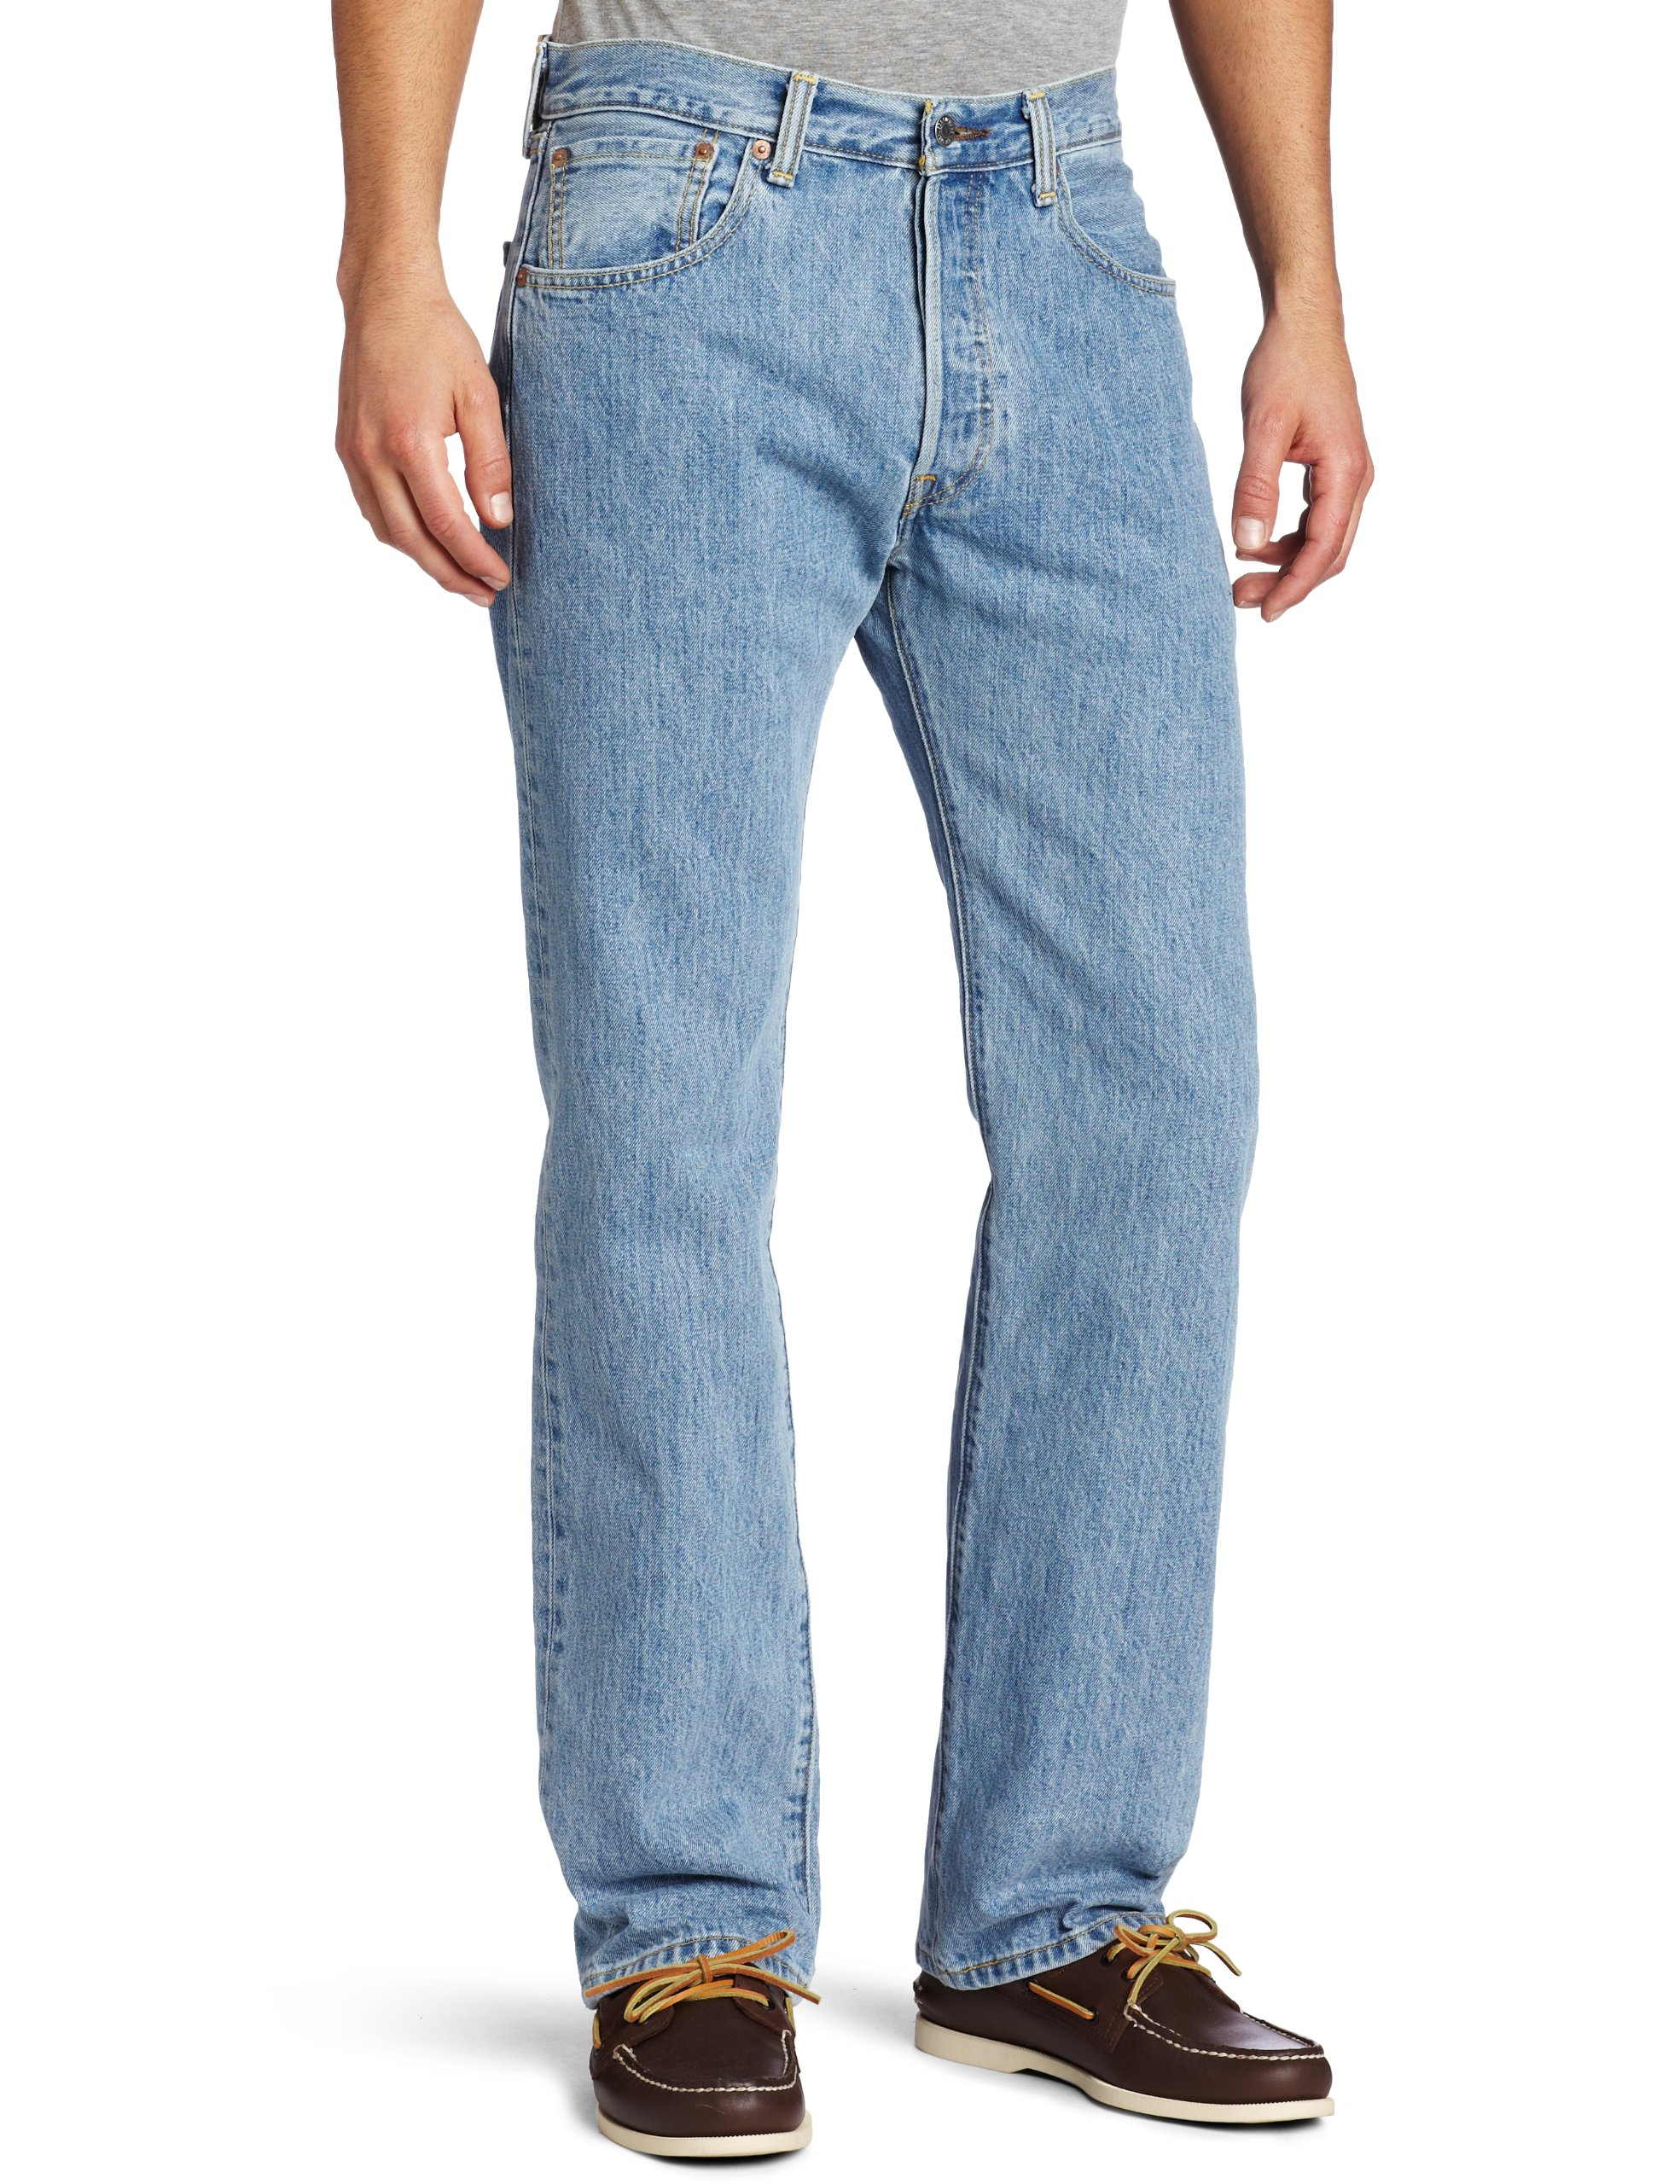 Levi's Men's 501 Original Fit Jean, Light Stonewash, 33X36 by Levi's